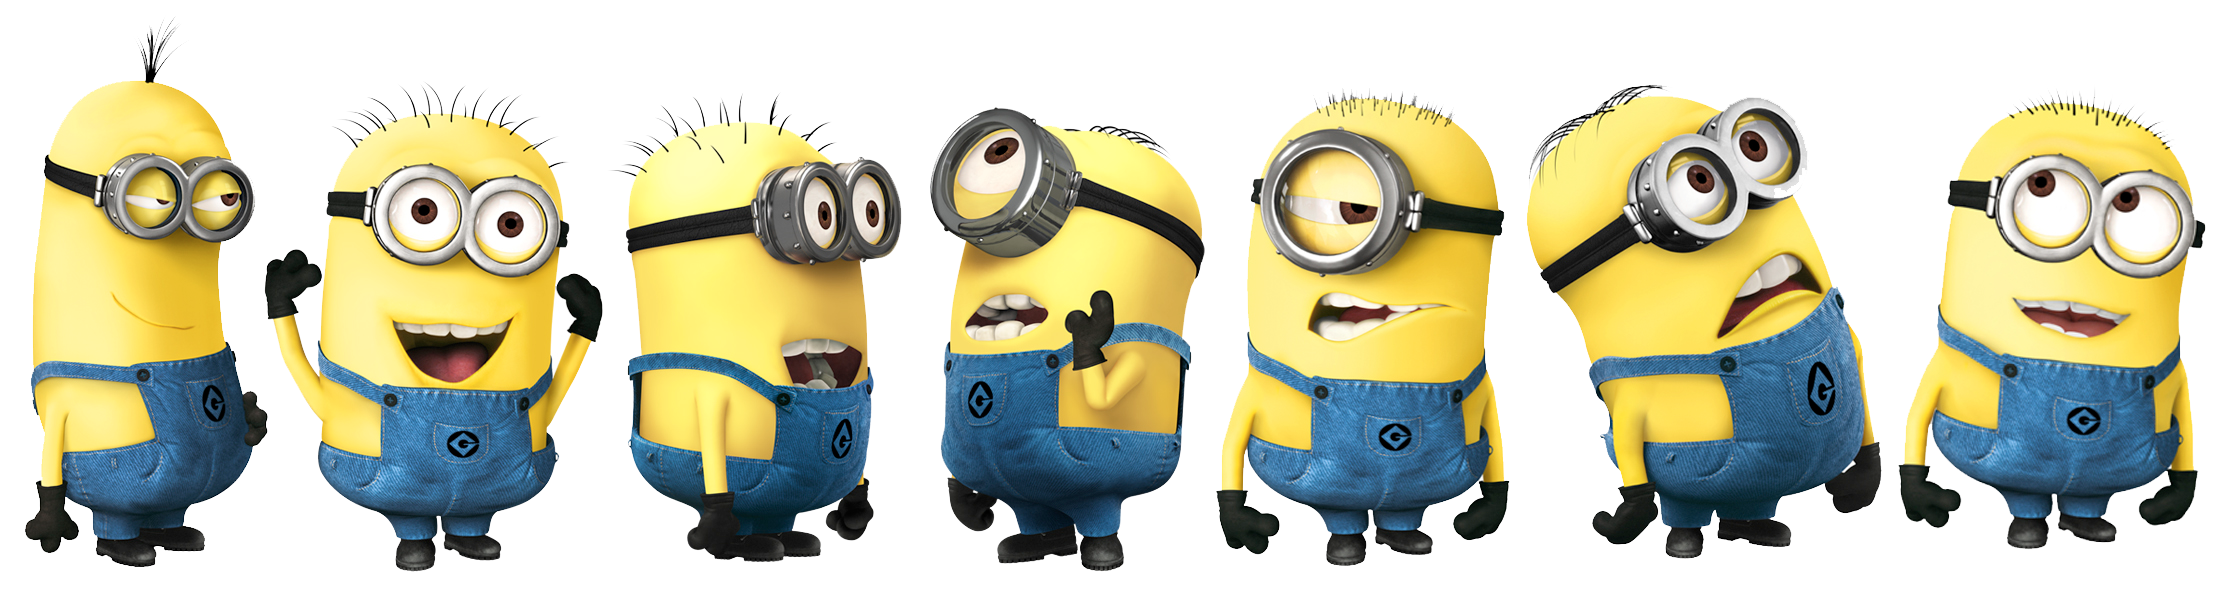 Minions logo png. Images